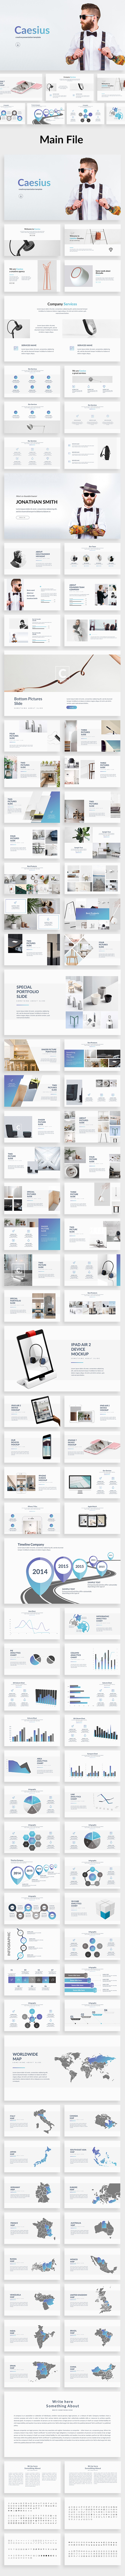 Caesius - Creative Google Slide Template - Google Slides Presentation Templates